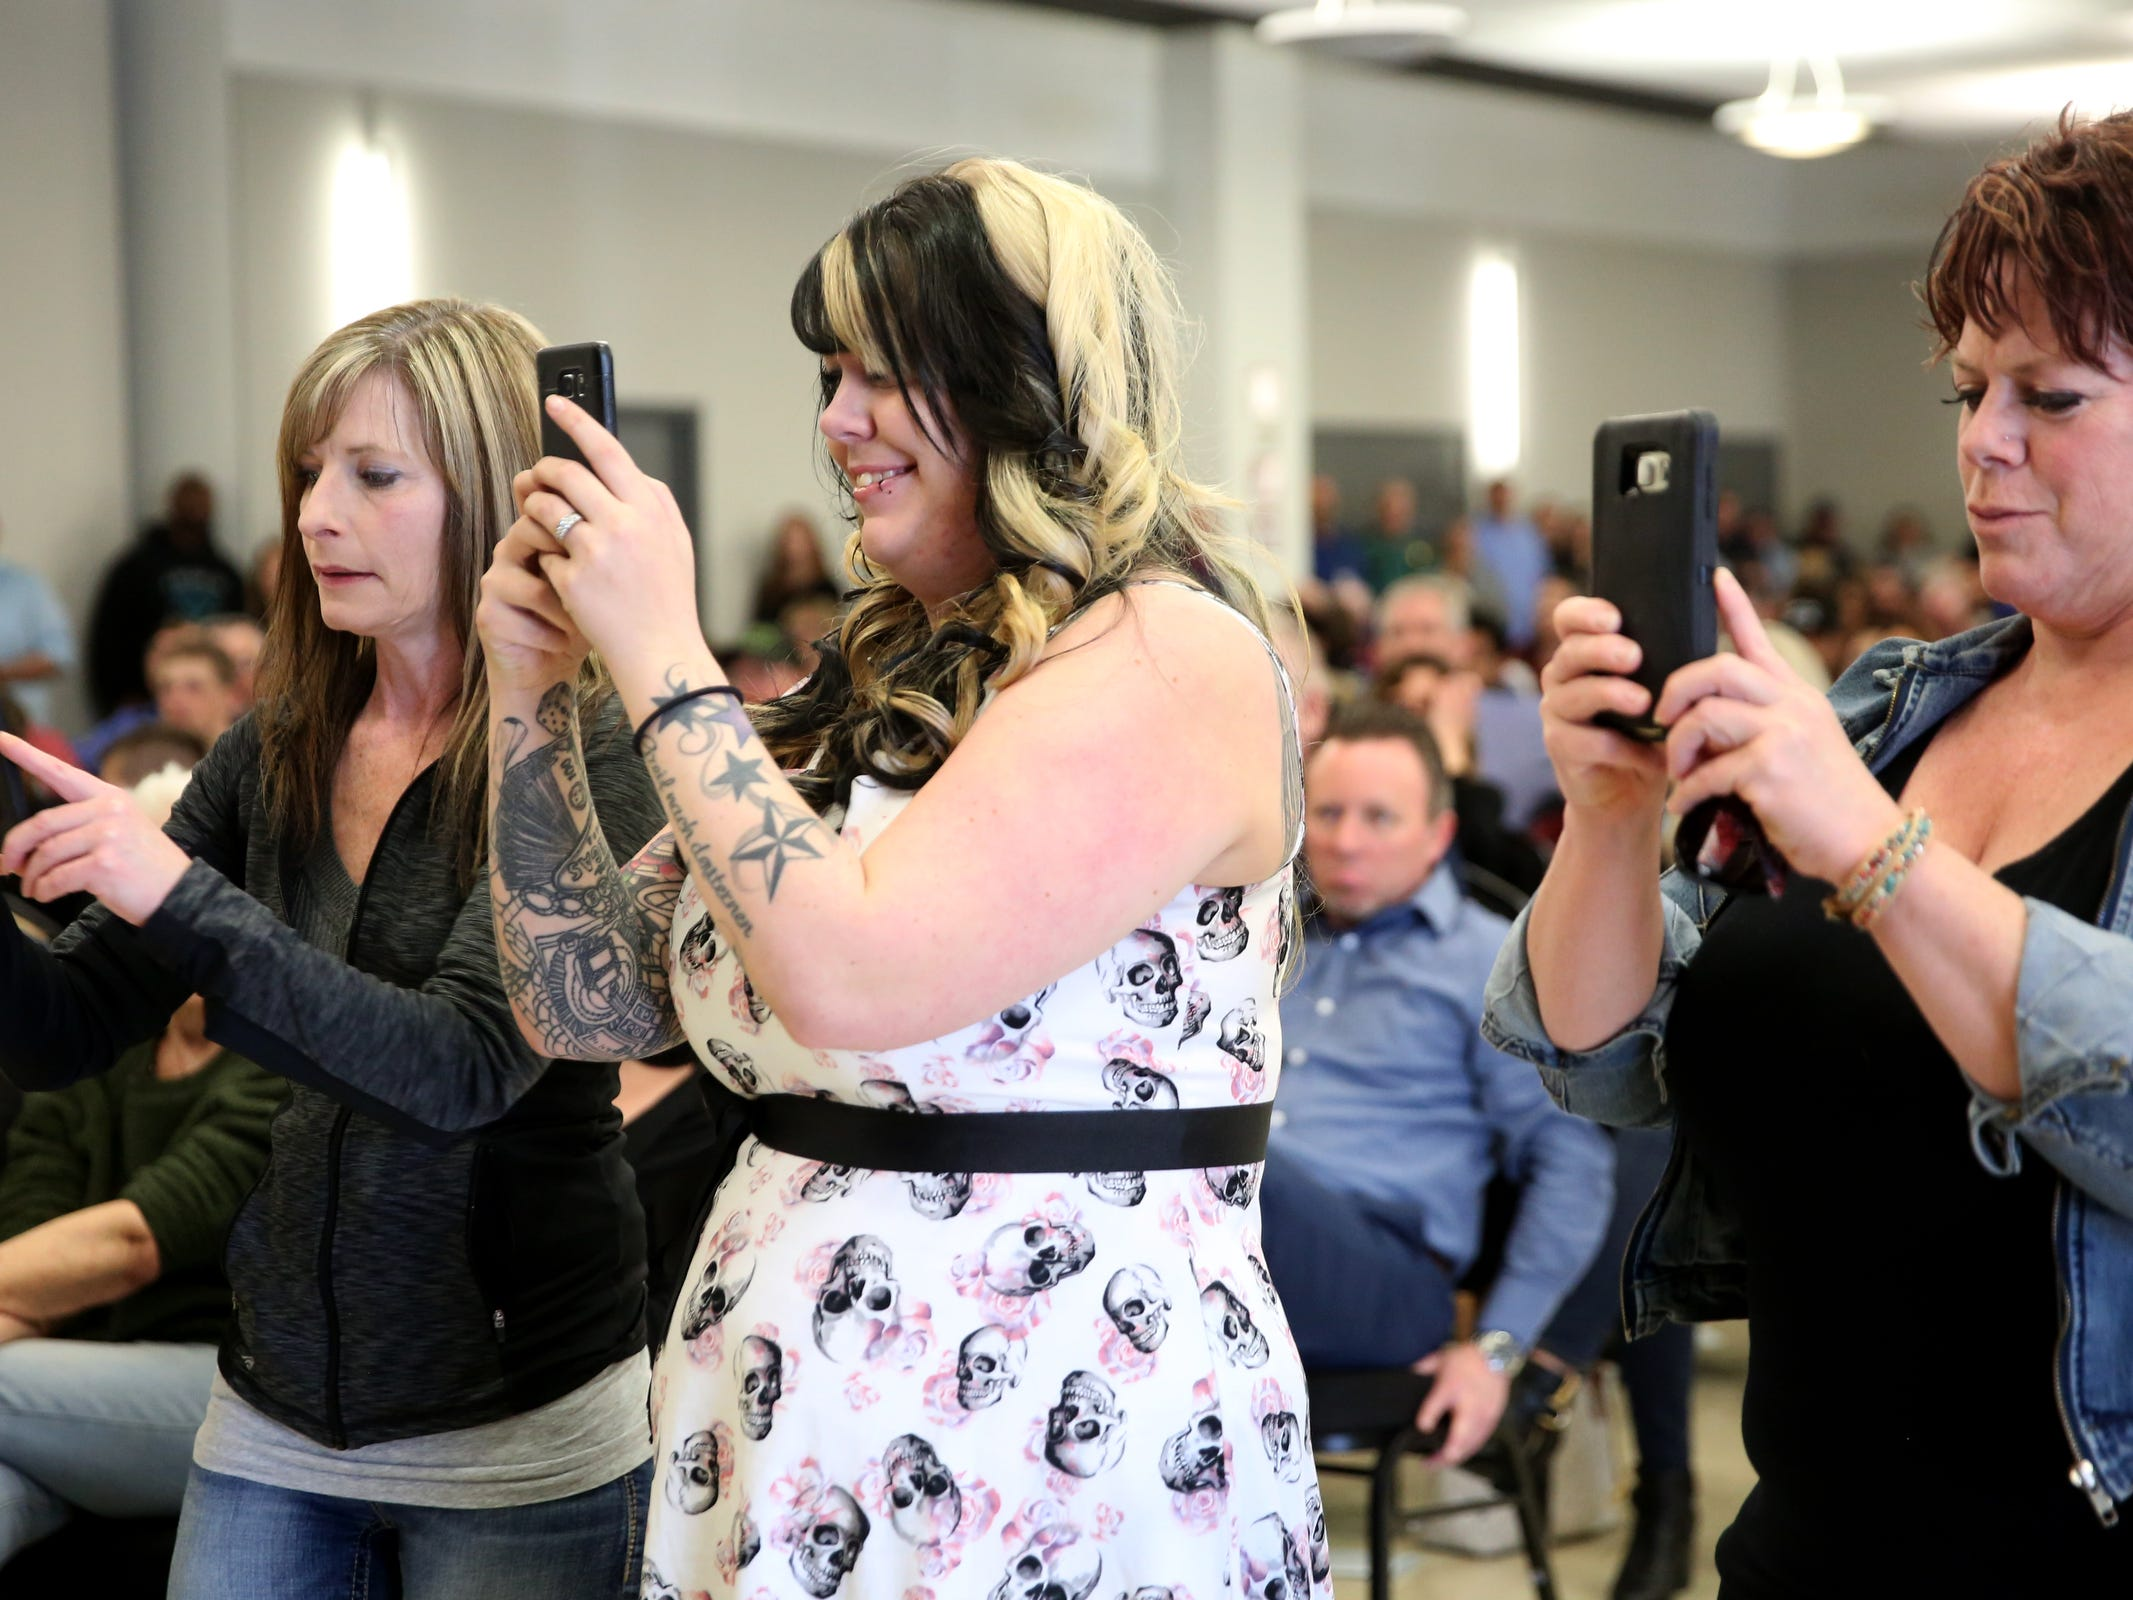 Victoria Delano, from left, of Salem, Lisa Bush, of Salem, and Catherine Underwood-Bush, of Independence, take photos of Douglas Bush, a new Marion County Sheriff's Deputy, during a Basic Police Class graduation ceremony at the Department of Public Safety Standards and Training in Salem on March 15, 2019.